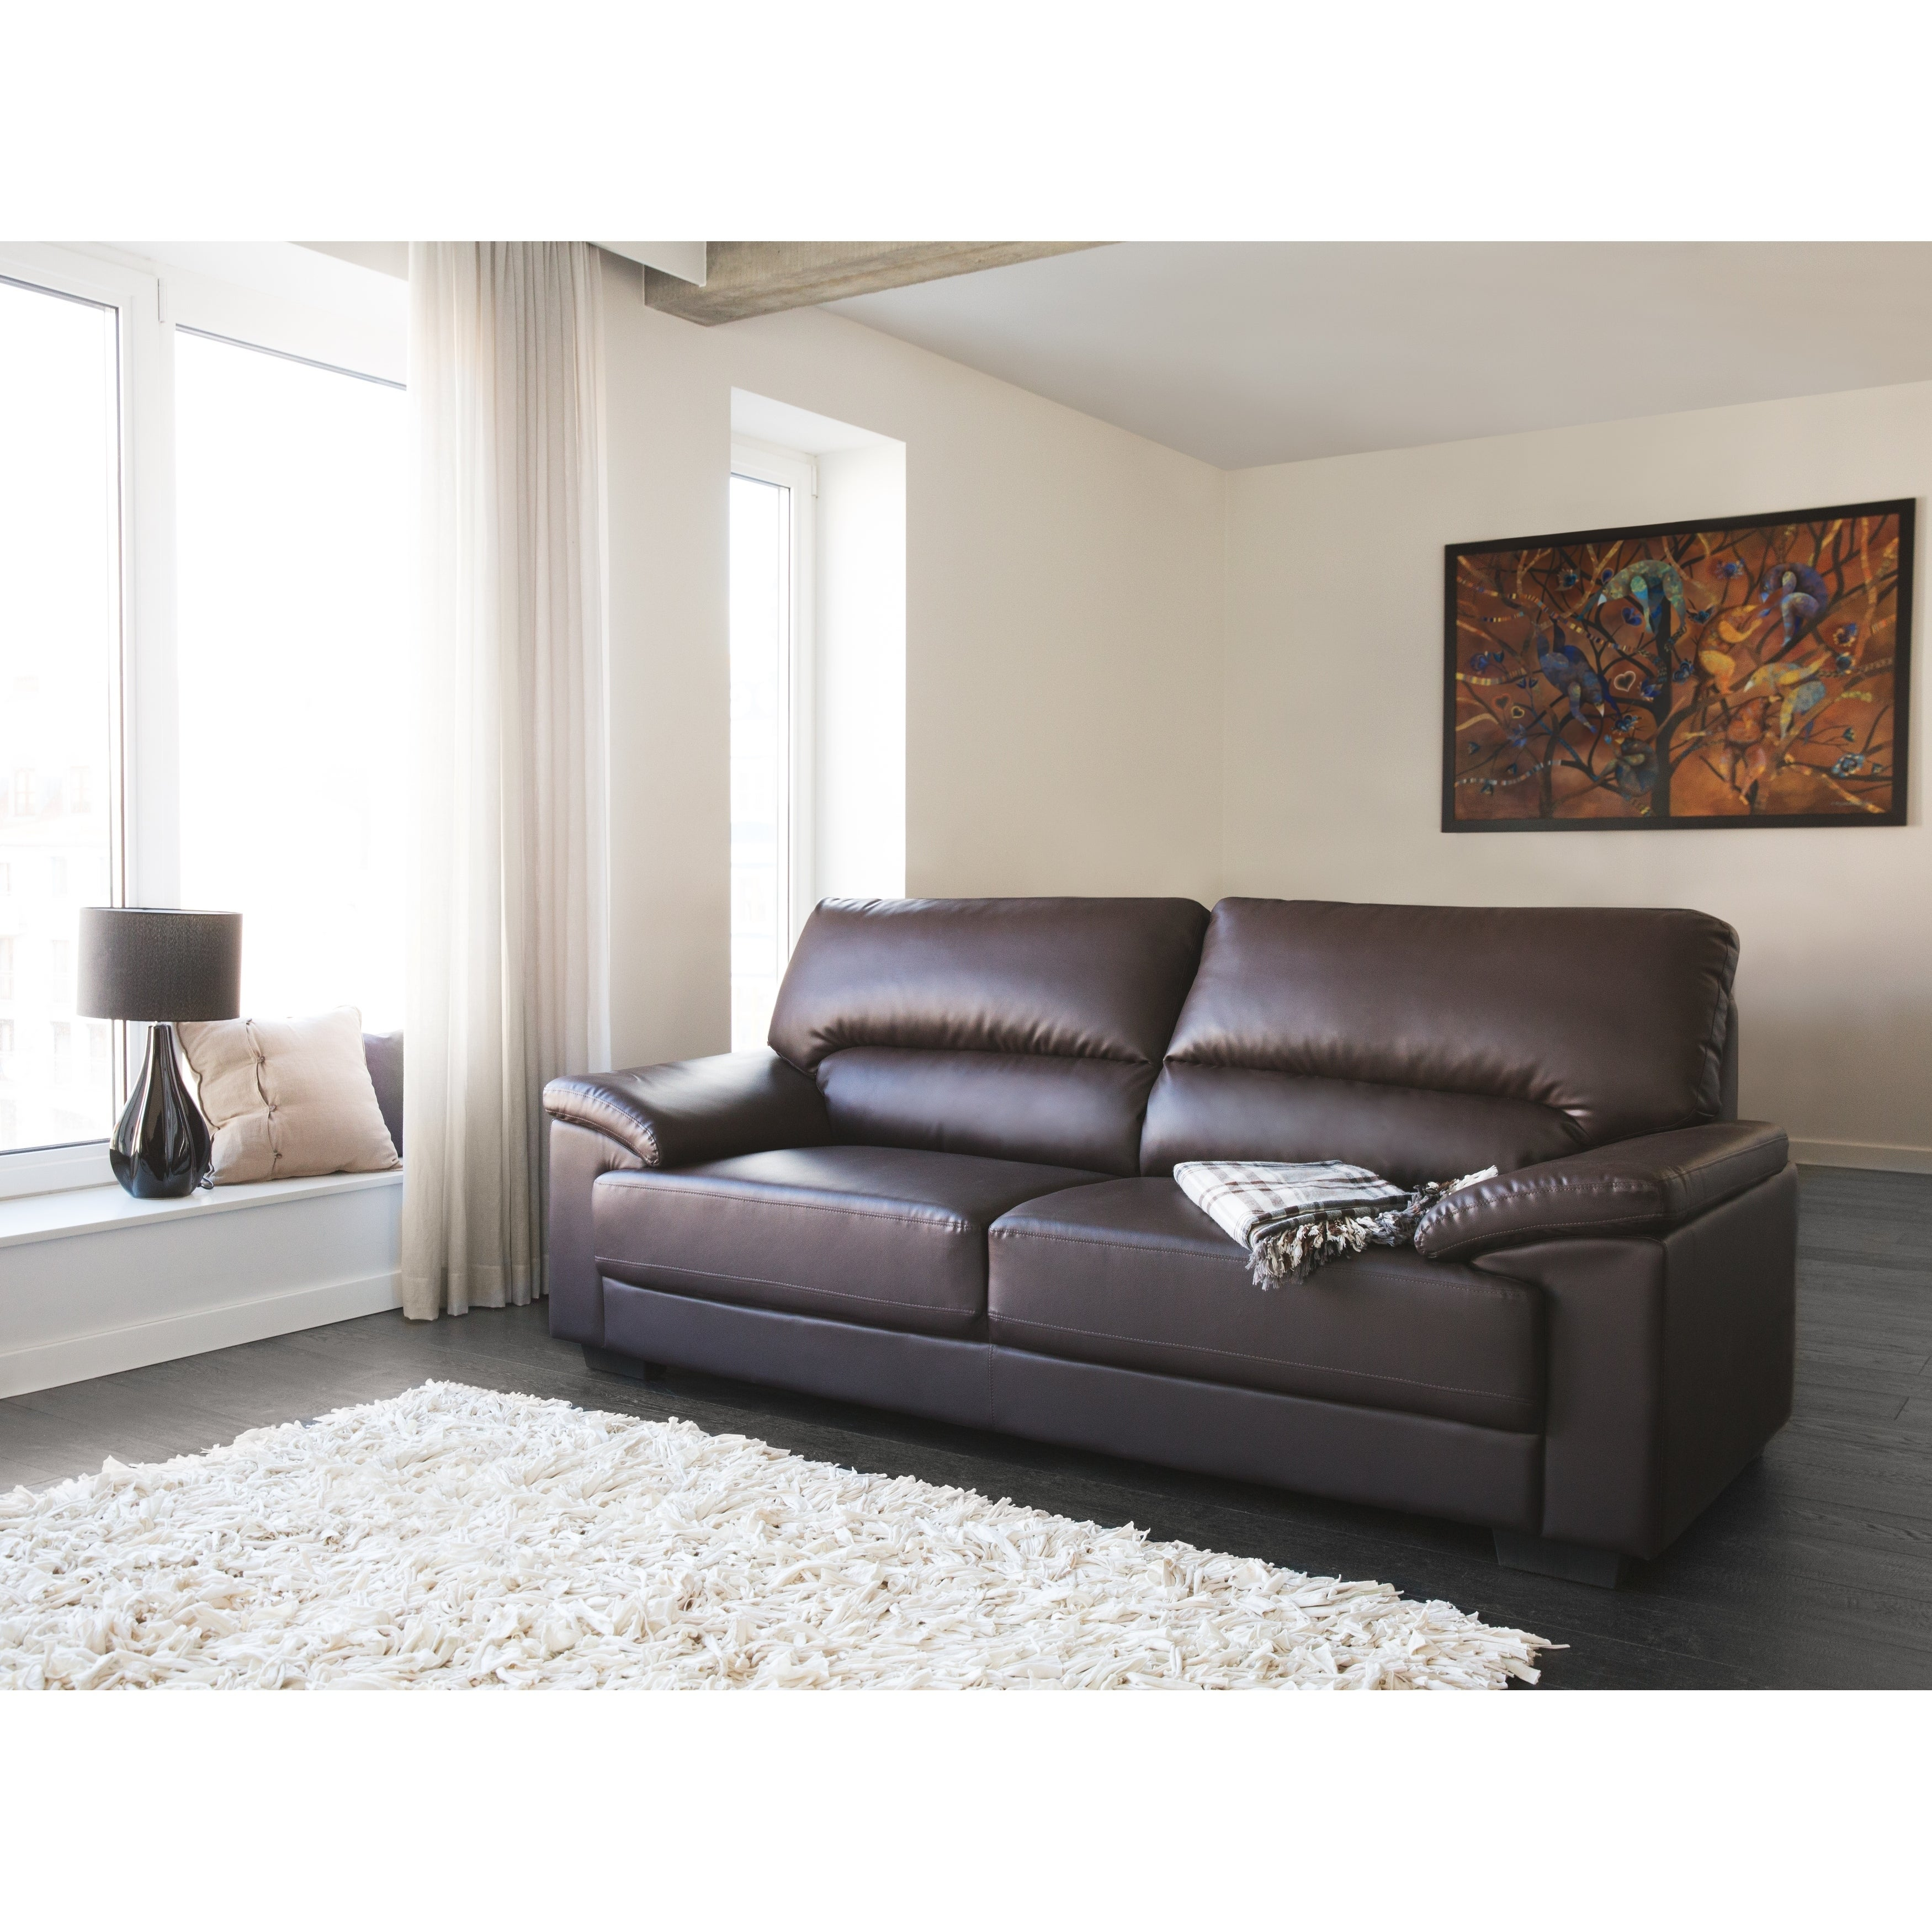 Classic 3 Seater Leather Sofa - Brown VOGAR